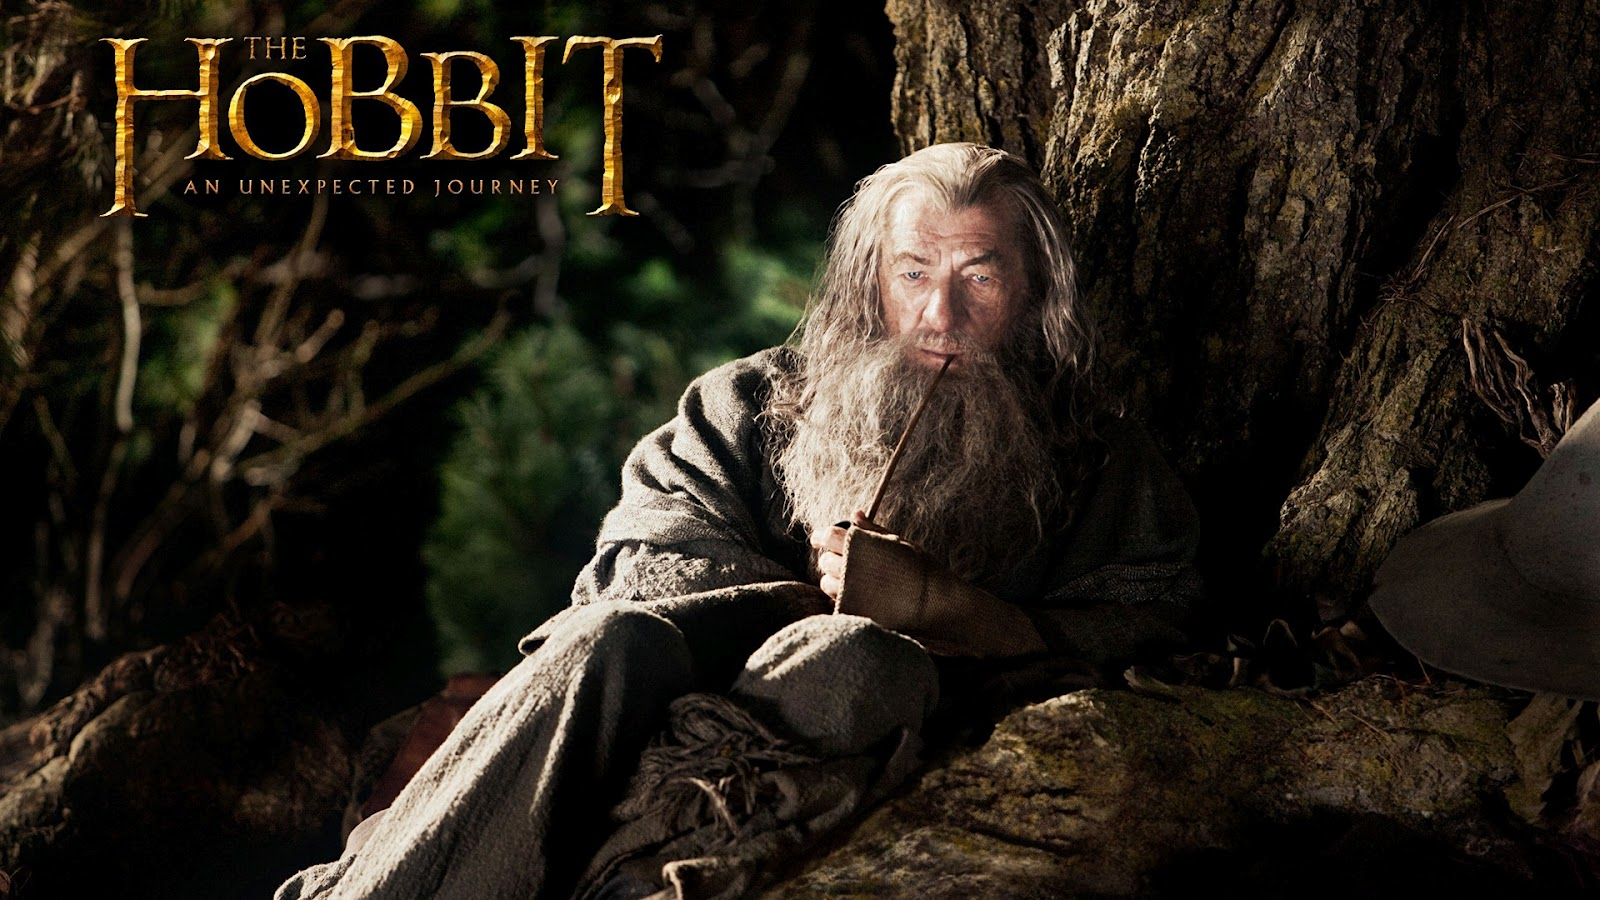 http://3.bp.blogspot.com/-0fmnWIdiSzg/T7L-1qIu9bI/AAAAAAAAEfk/CAcUh2u5qyY/s1600/The+Hobbit+An+Unexpected+Journey+HD+Wallpaper+9.jpg